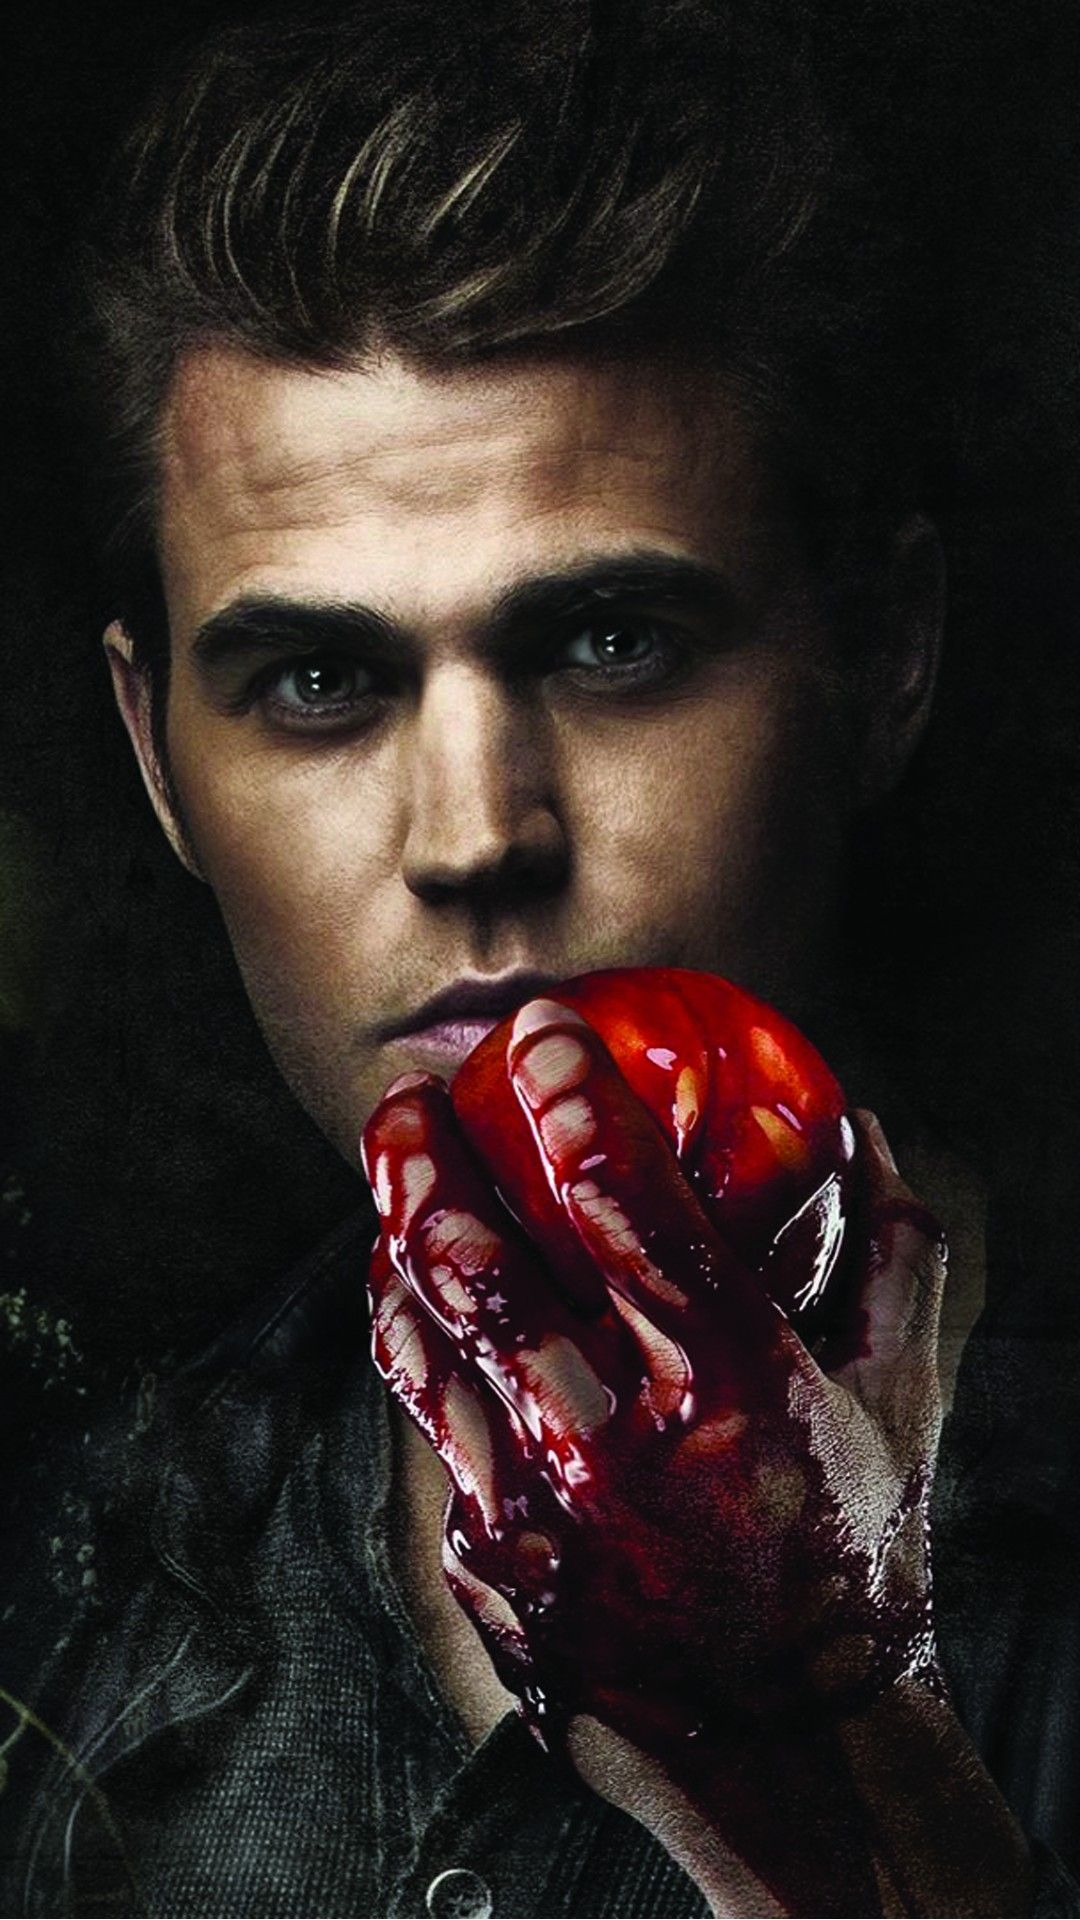 Stefan Salvatore Paul Wesley Vampire Diaries Phone Wallpaper HD